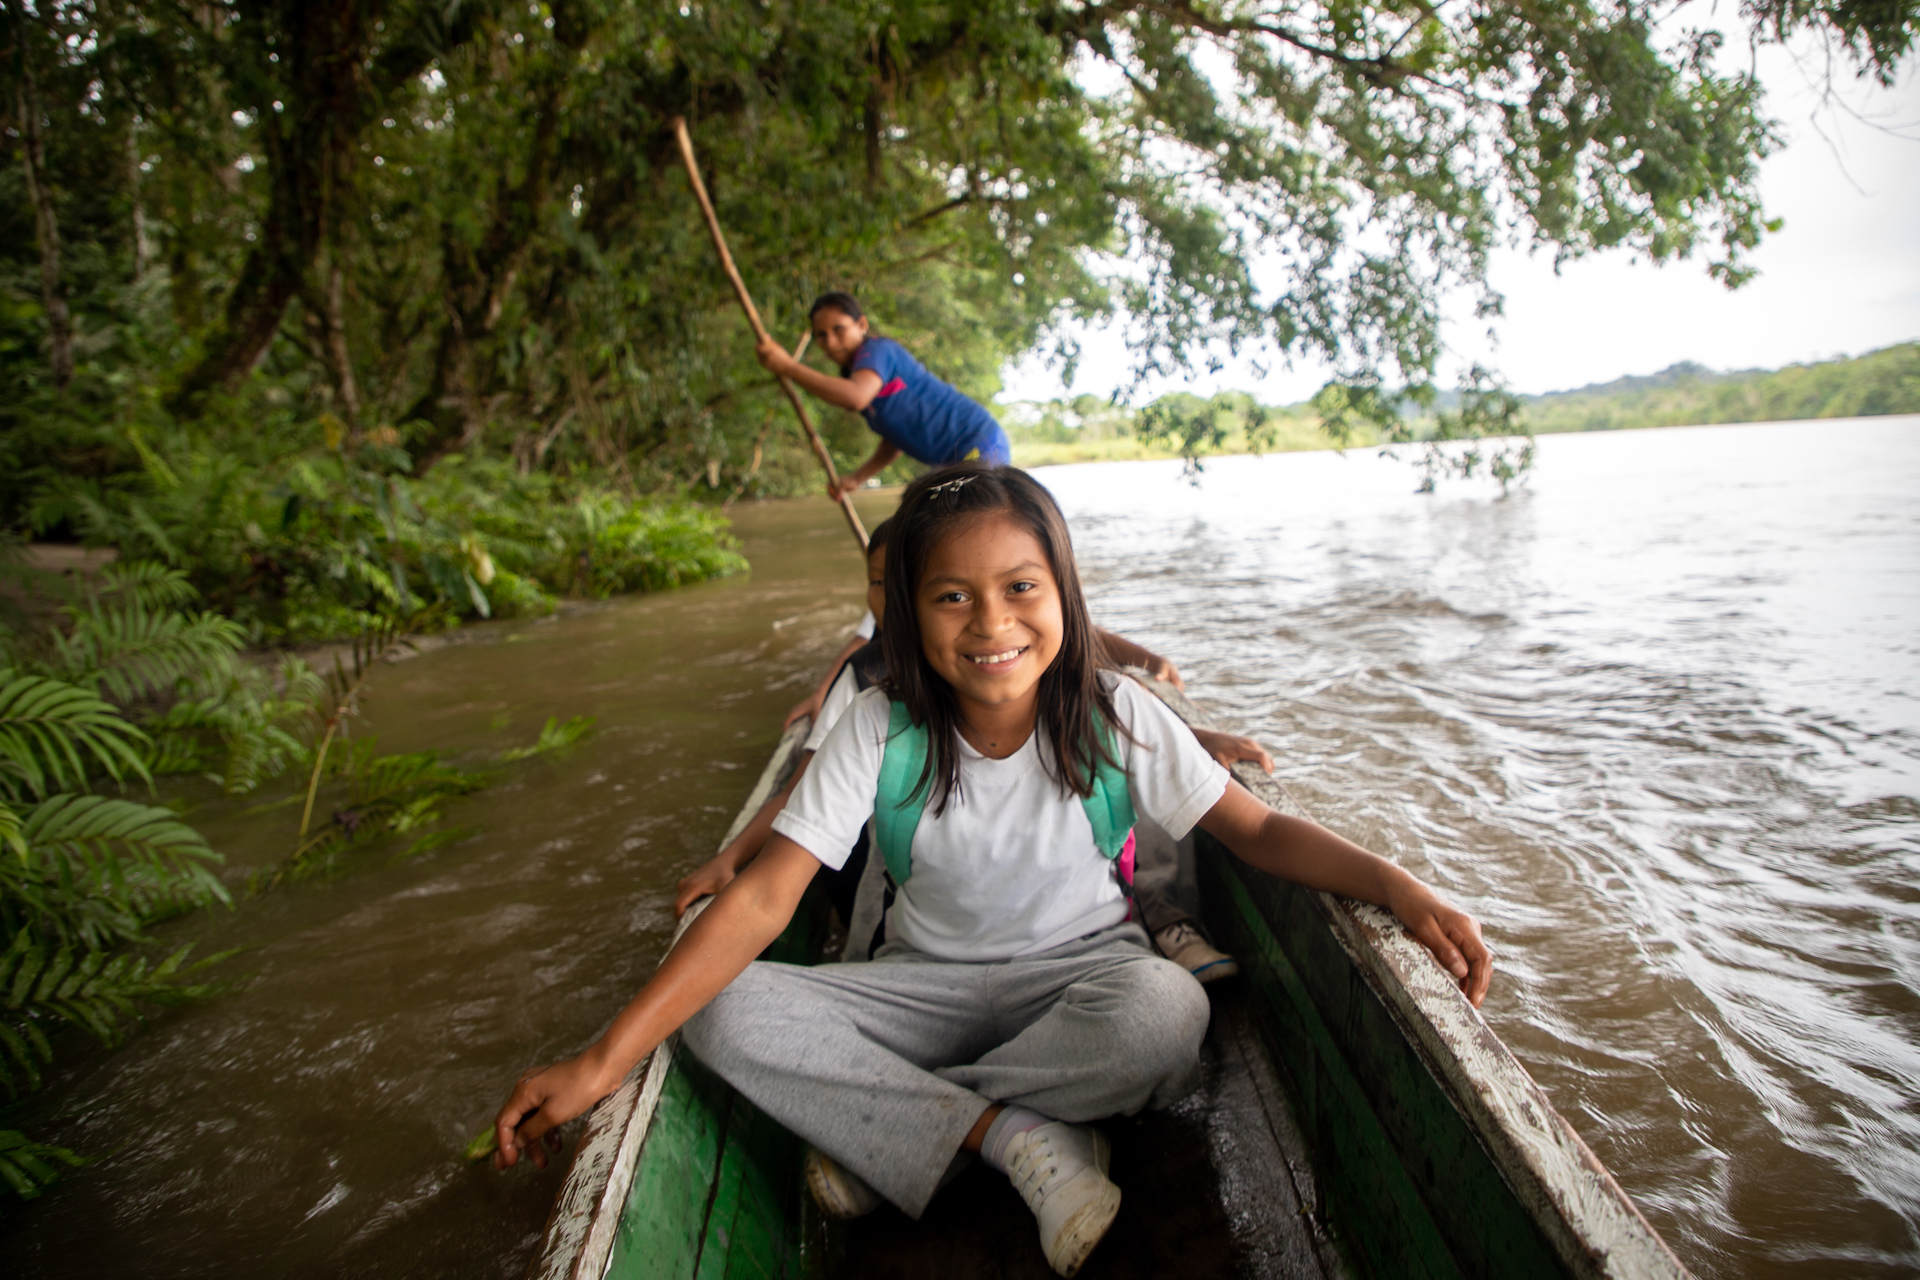 A young girl in a white tshirt sits in a canoe wearing a backpack, on her way to school.